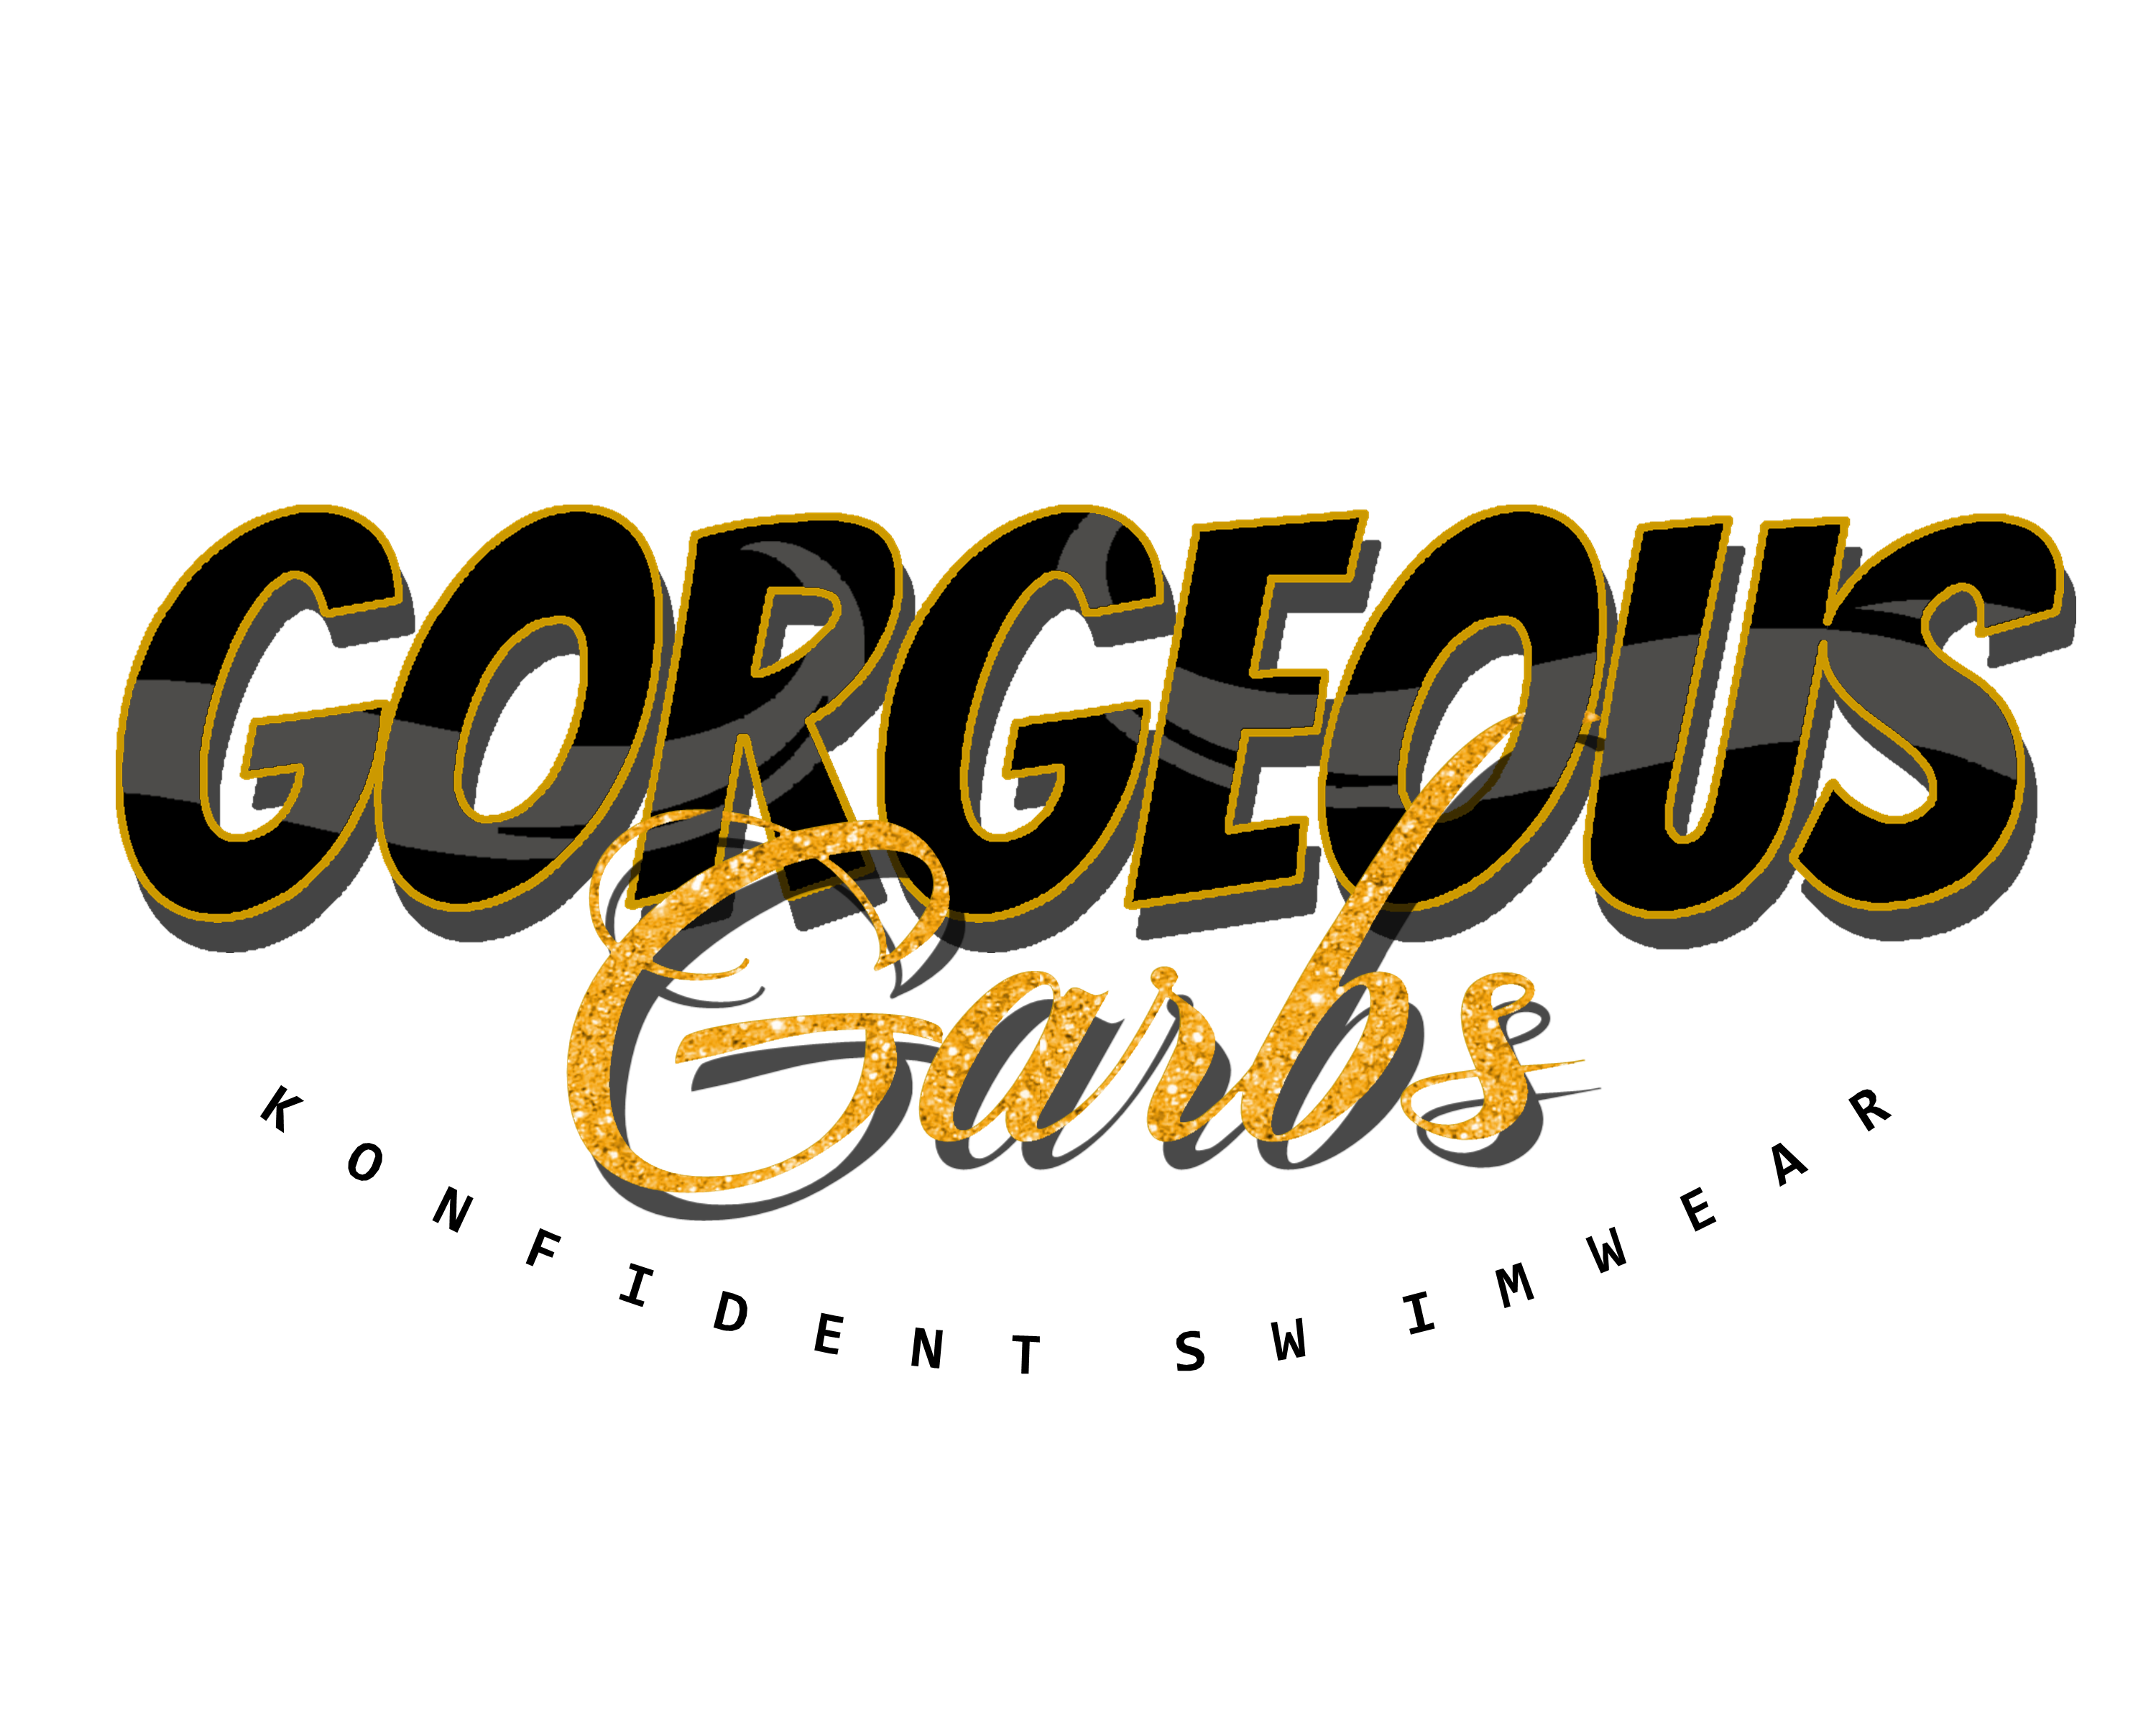 """Actress and Publicist Chrissy Haynie Announces Relaunch of Her Boutique """"Gorgeous Garbs"""" Online"""